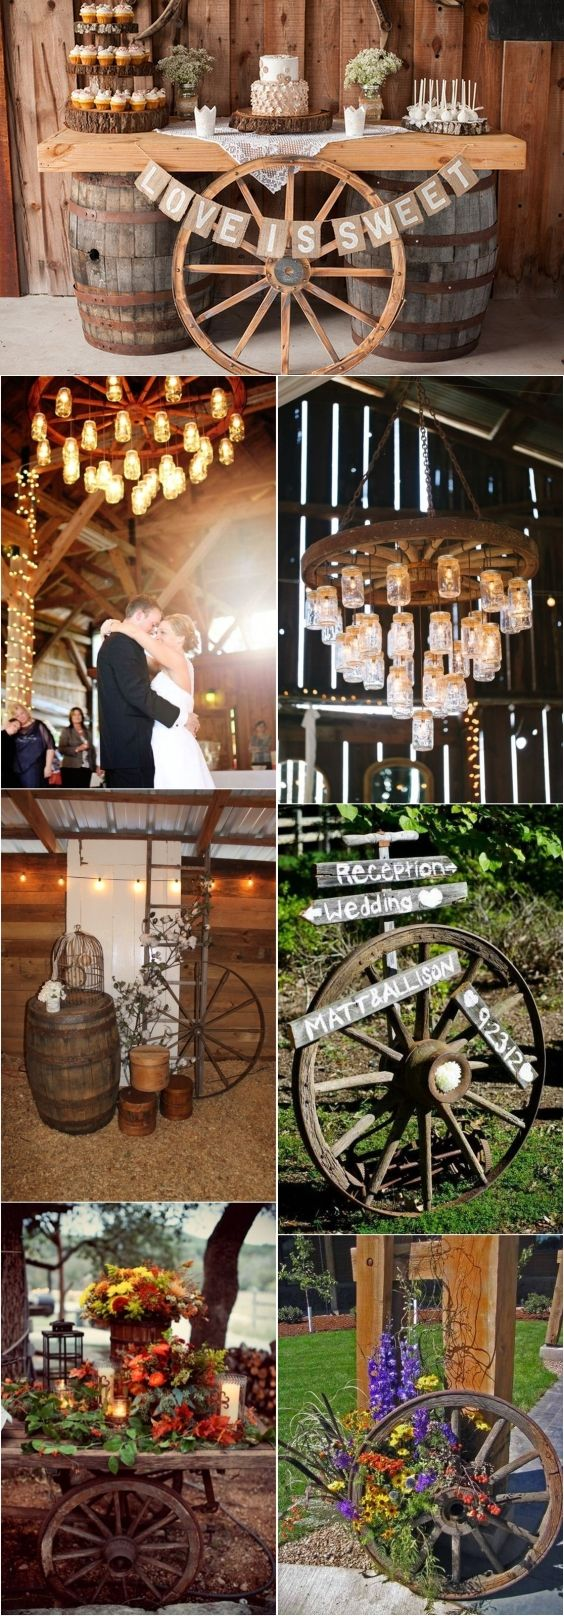 Rustic Country Wagon Wheel Wedding Ideas / http://www.deerpearlflowers.com/rustic-country-wagon-wheel-wedding-ideas/